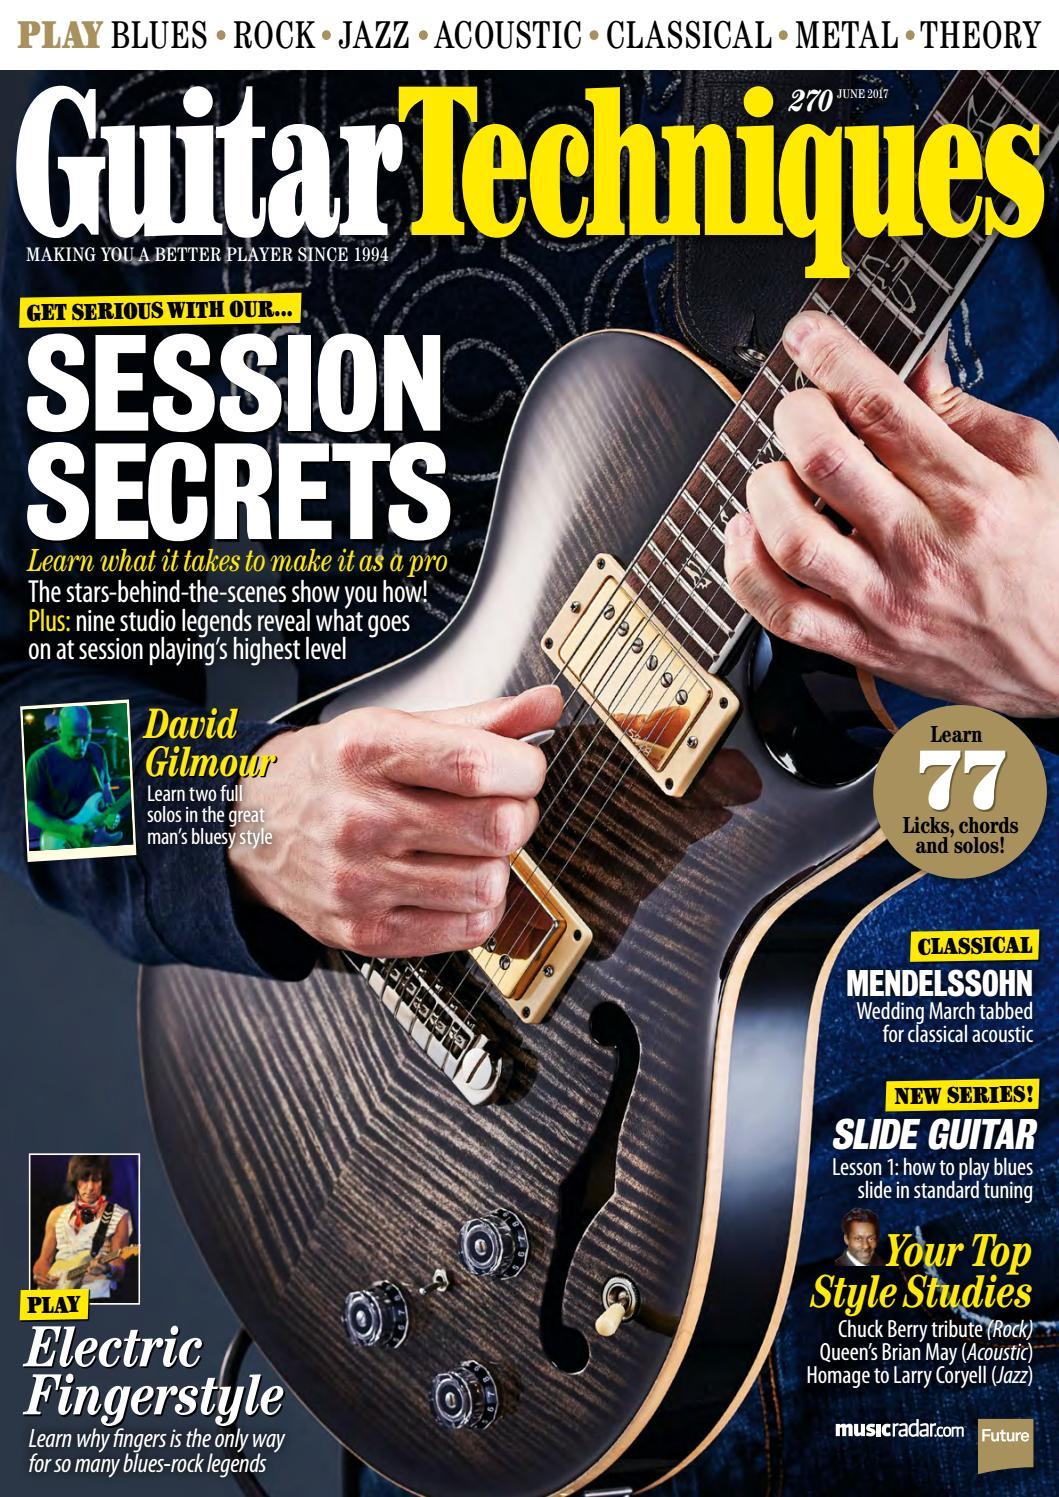 Guitar Techniques 270 Sampler By Future Plc Issuu